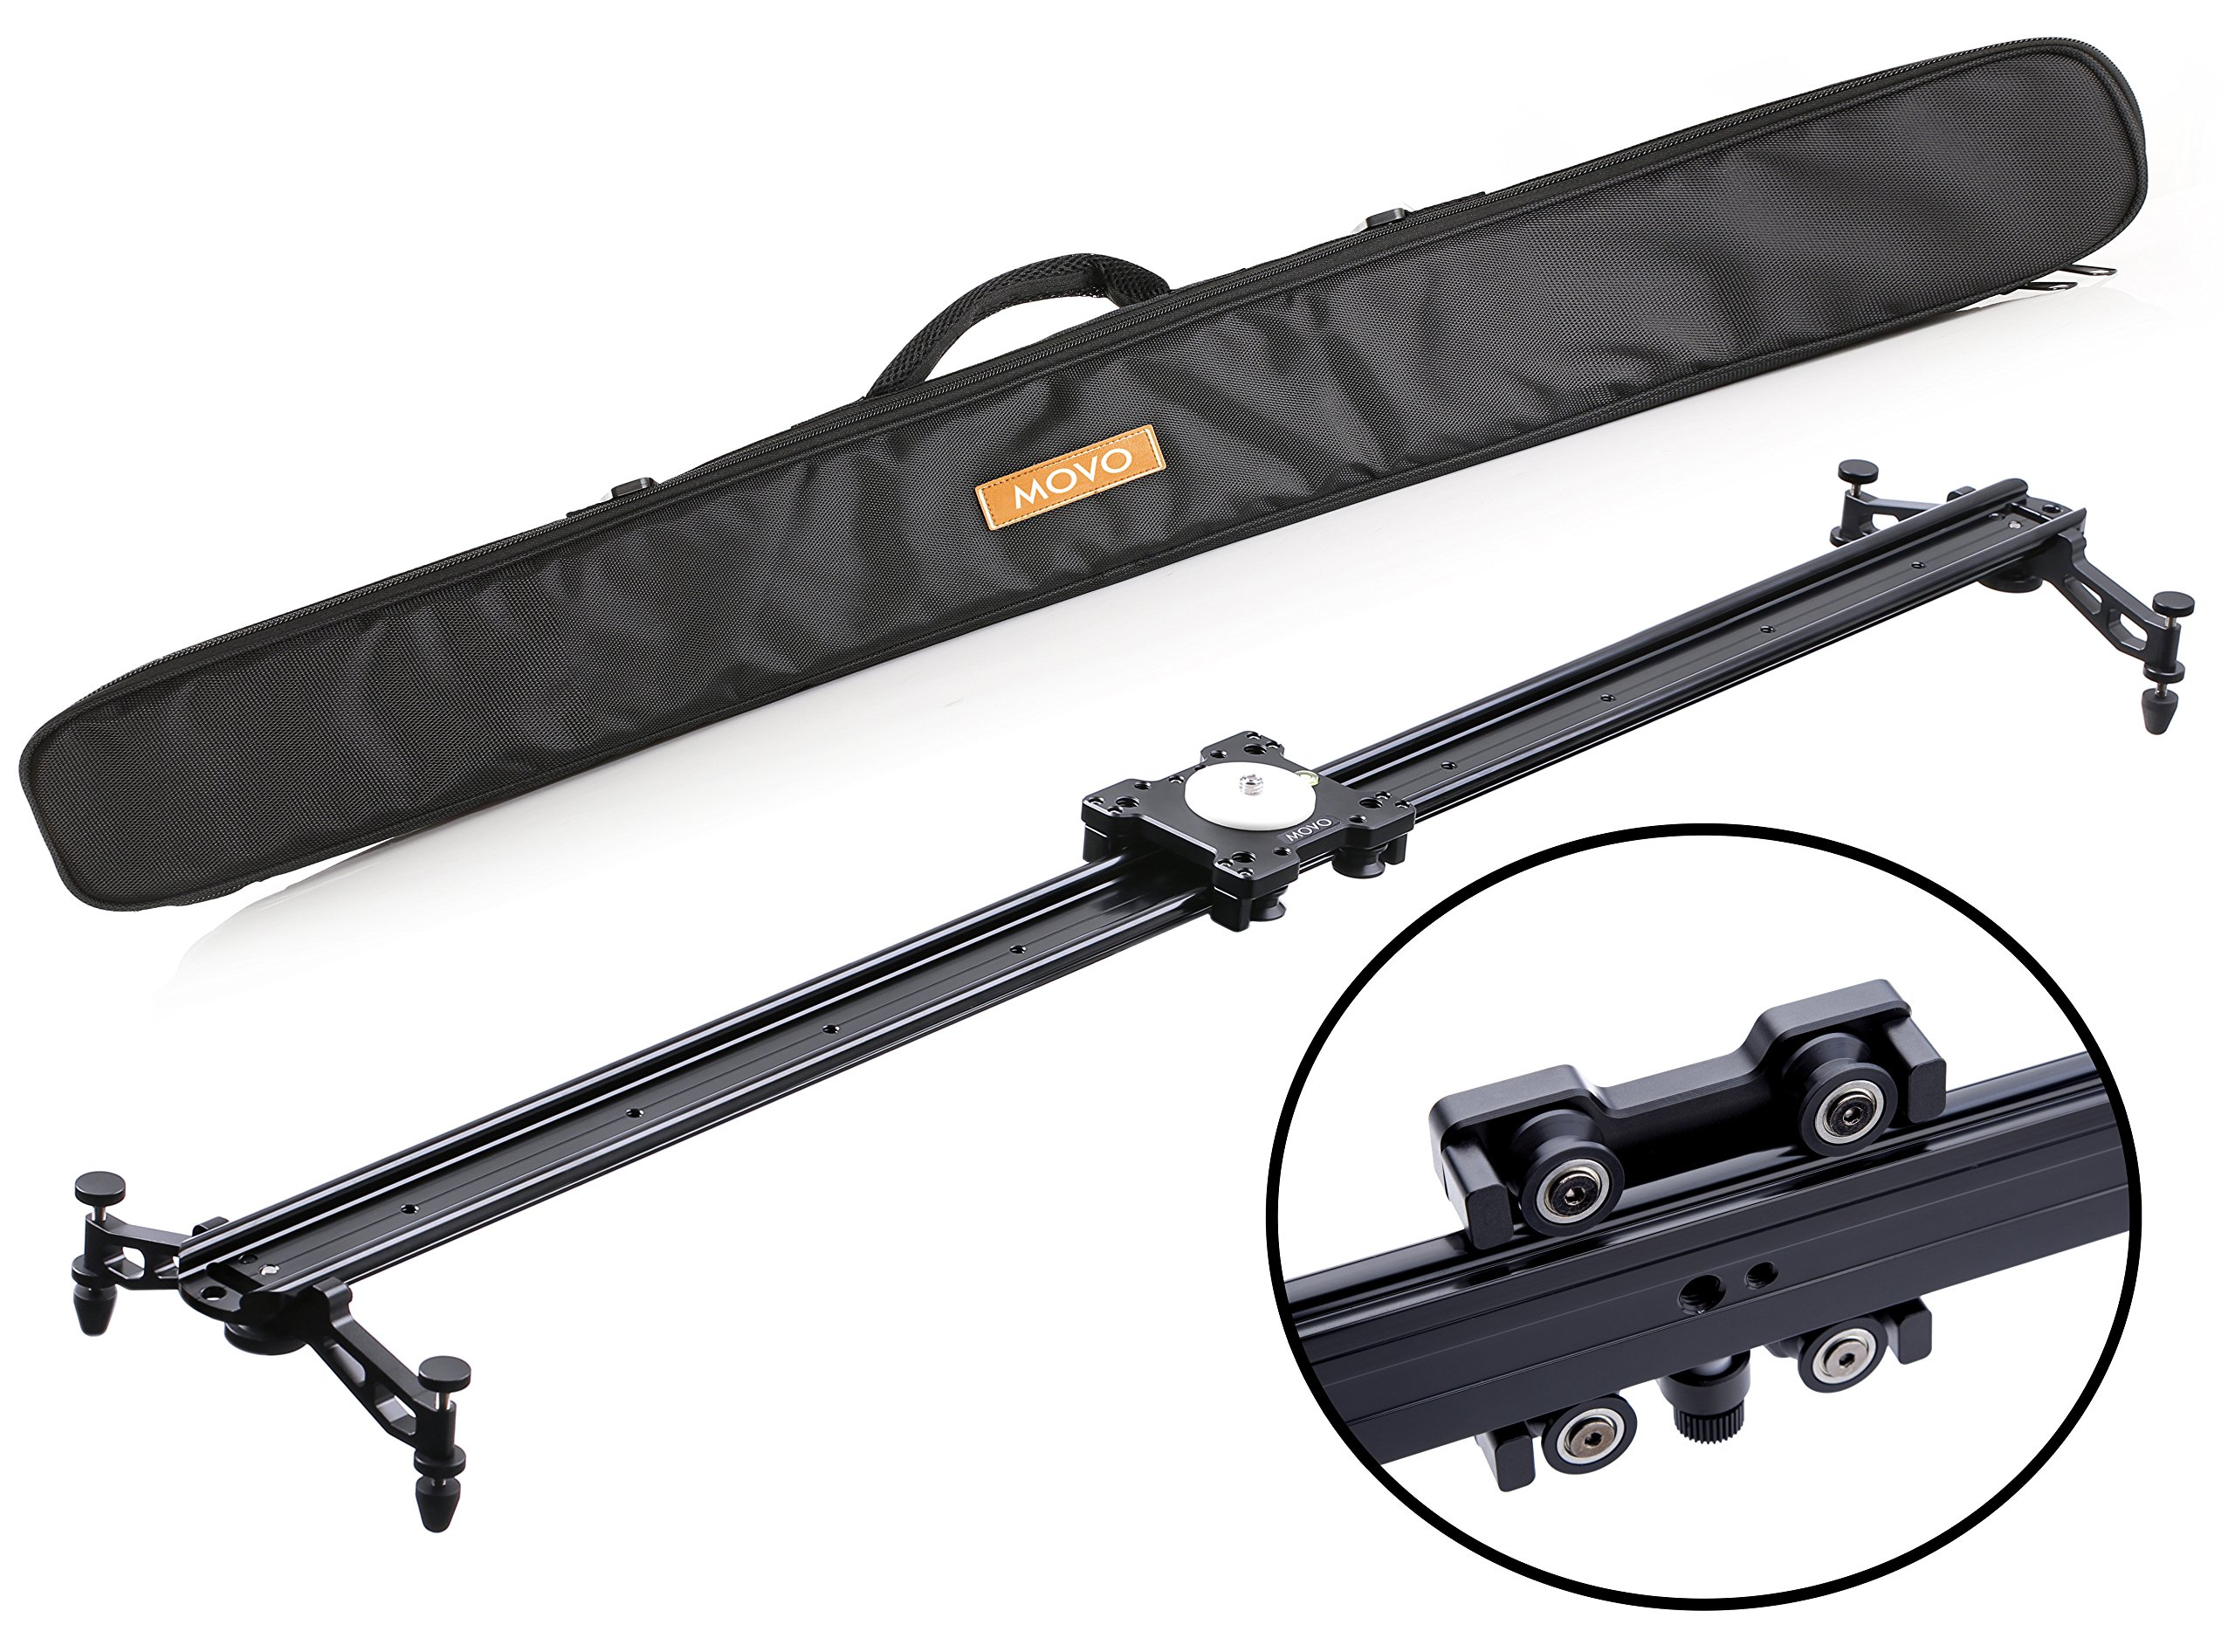 Movo MV-S120 47'' Camera Slider Track Glider System with Roller Bearing Platform, Adjustable Legs, Tension Control and More by Movo